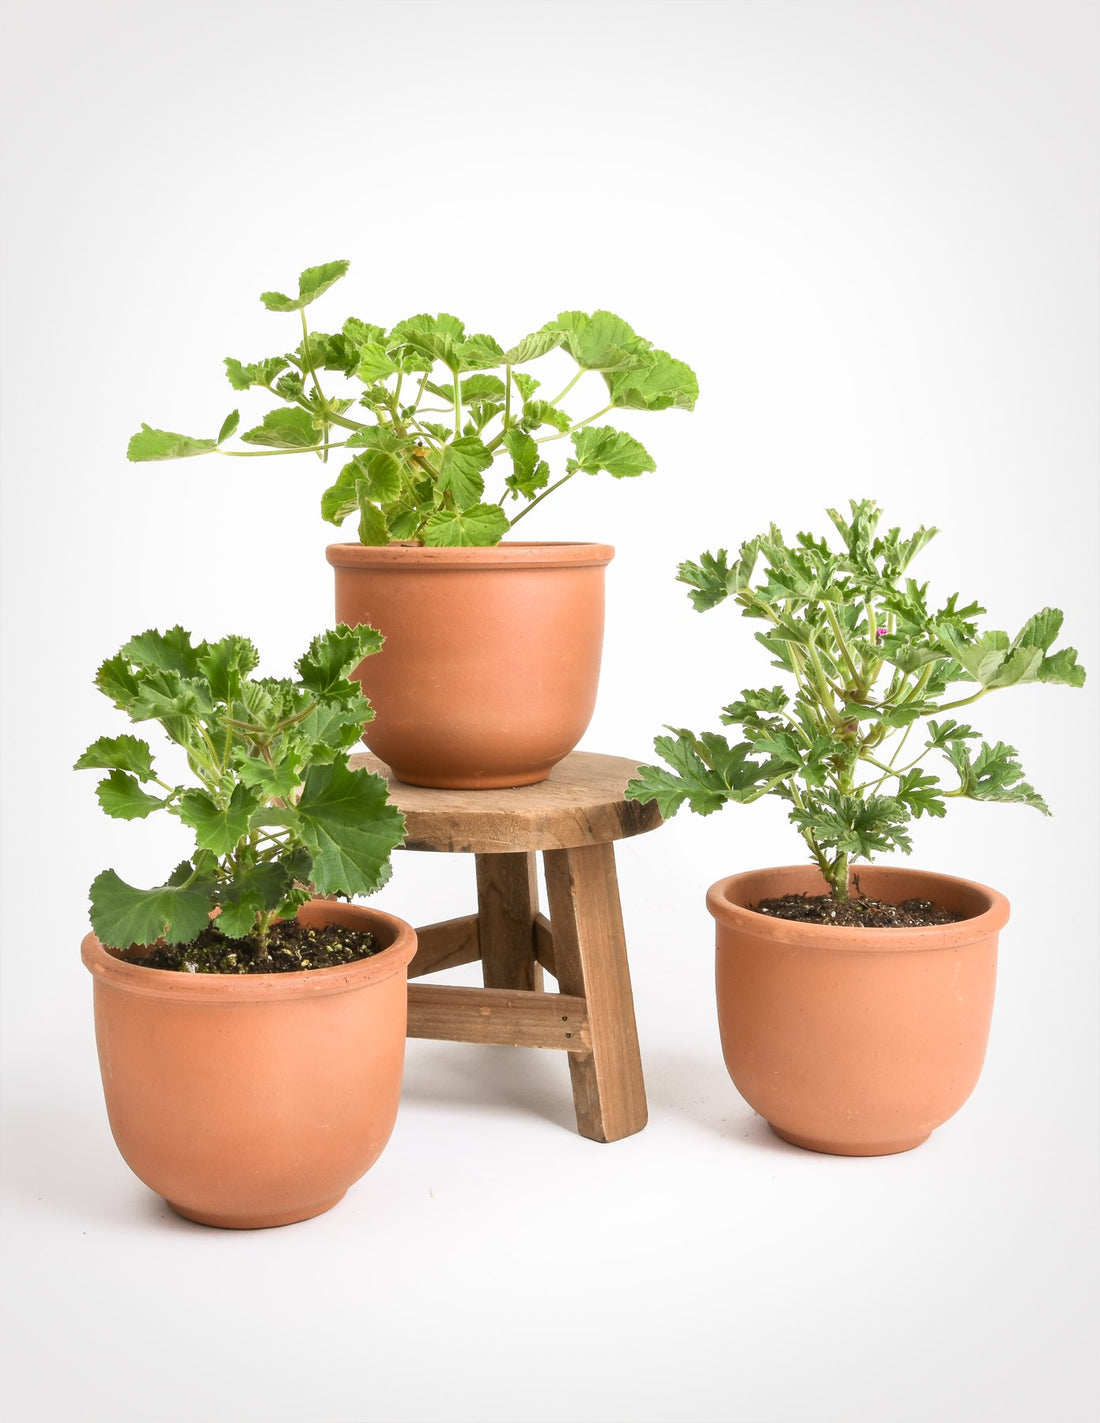 Signs of Spring: Selecting and Caring for Pelargoniums, aka Scented Geraniums